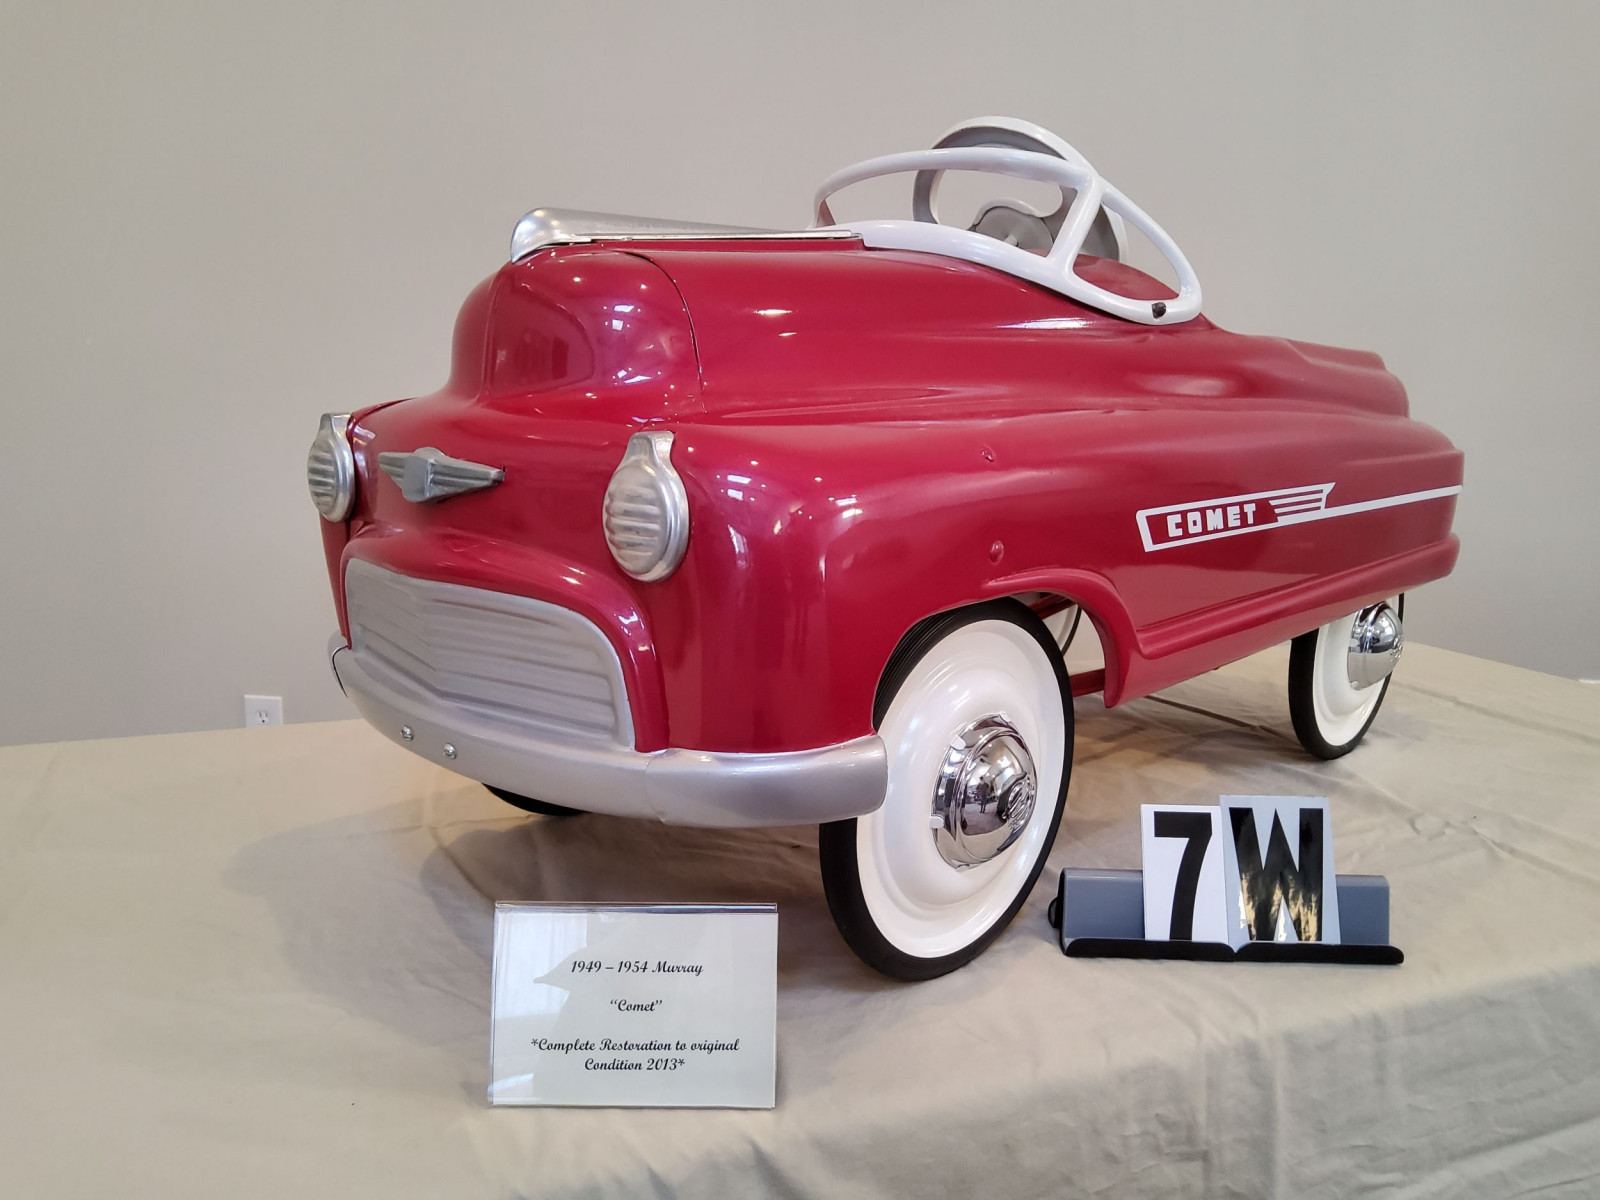 1949-54 Murray Comet Pedal Car - Image 1